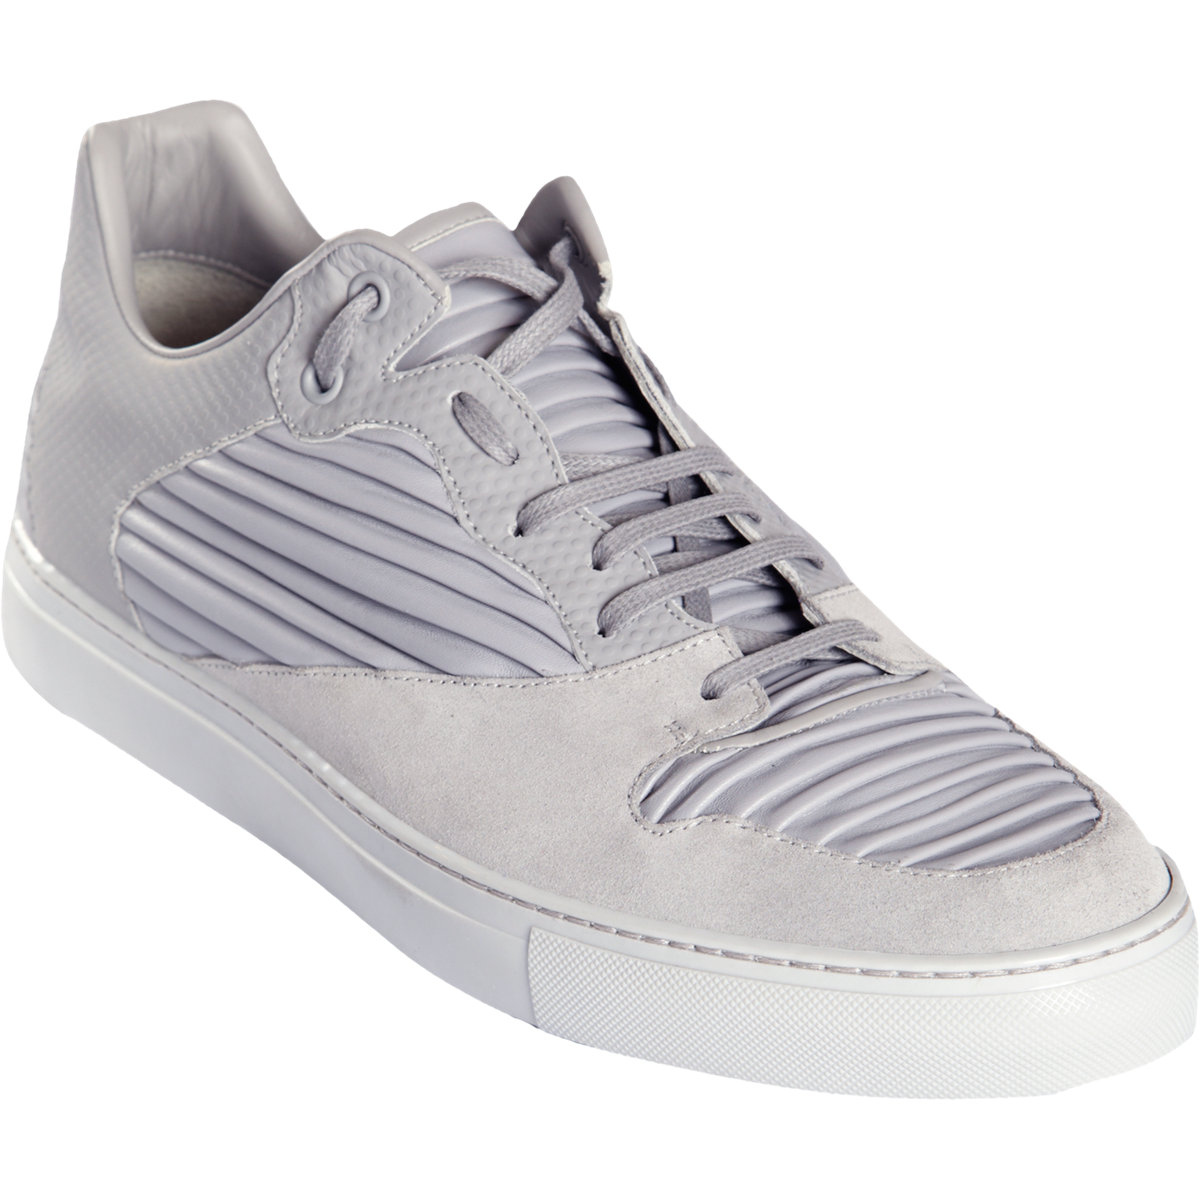 balenciaga low top sneakers in gray for men grey lyst. Black Bedroom Furniture Sets. Home Design Ideas